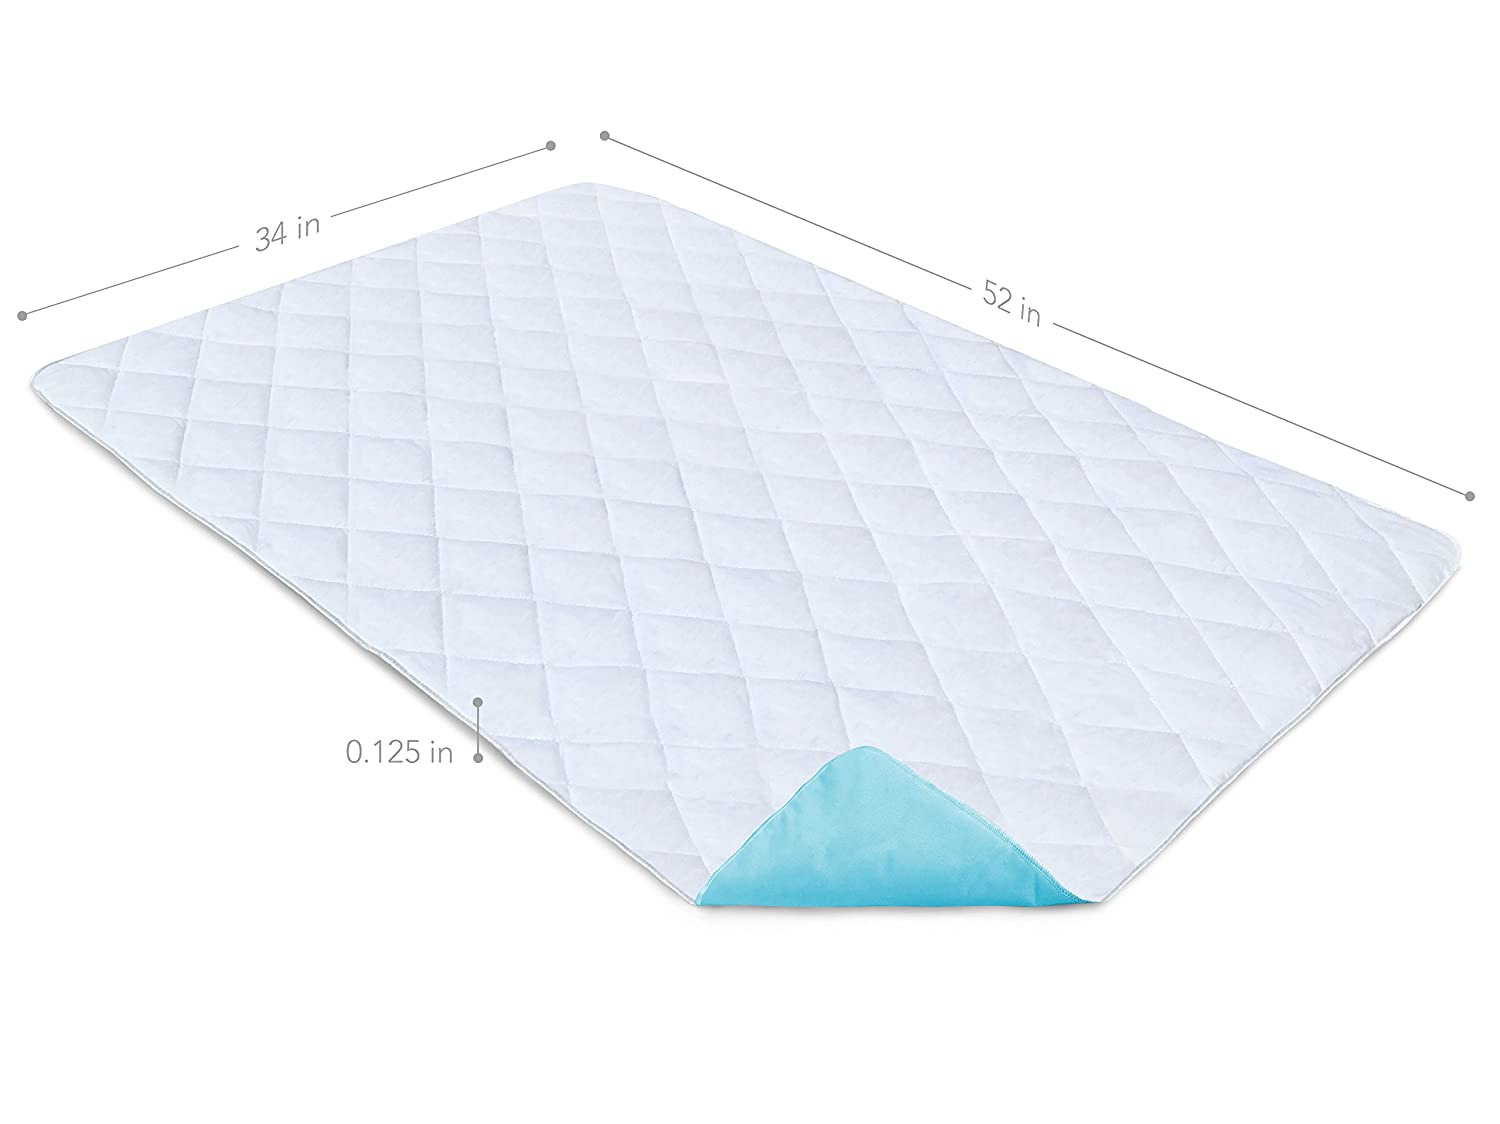 Lovely Amazon PharMeDoc Waterproof Reusable Bed Pad u x inches u Machine Washable Absorbent Bedwetting u Incontinence Bed Pads and Mattress